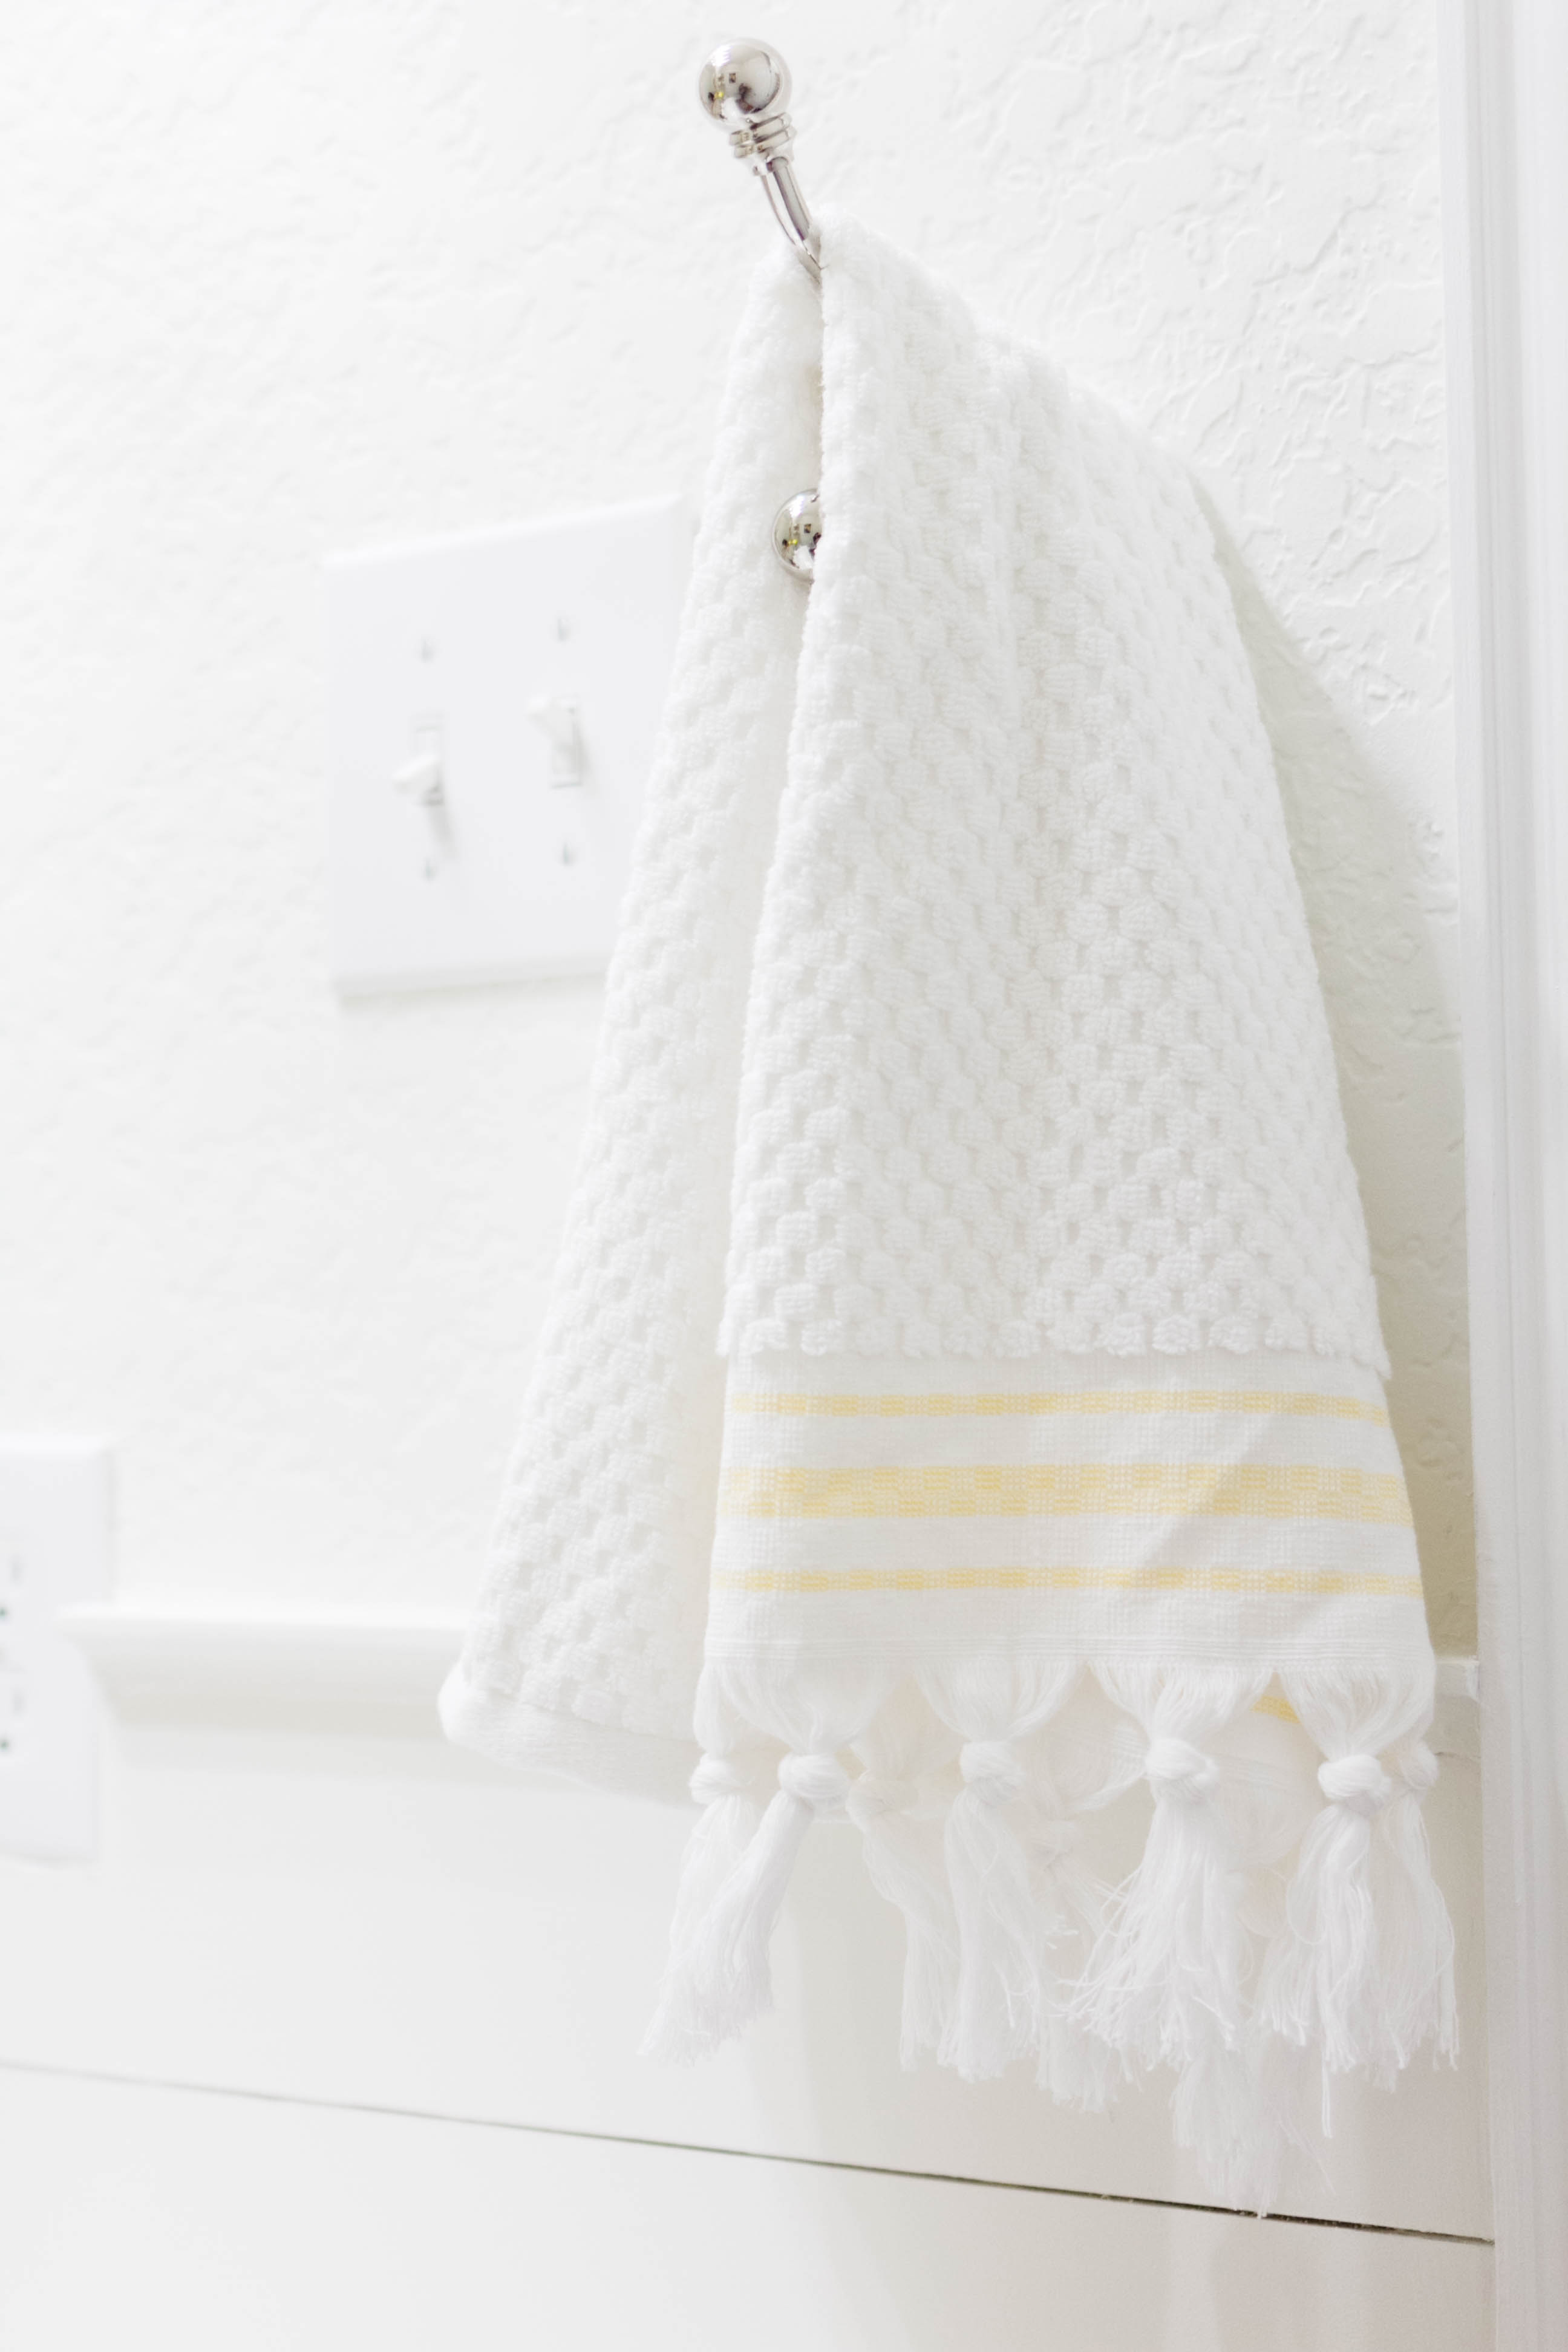 Hand Towel in a bright and welcoming mudroom/powder room combo with a modern-casual-beach feel. Designed by: IrisNacole.com